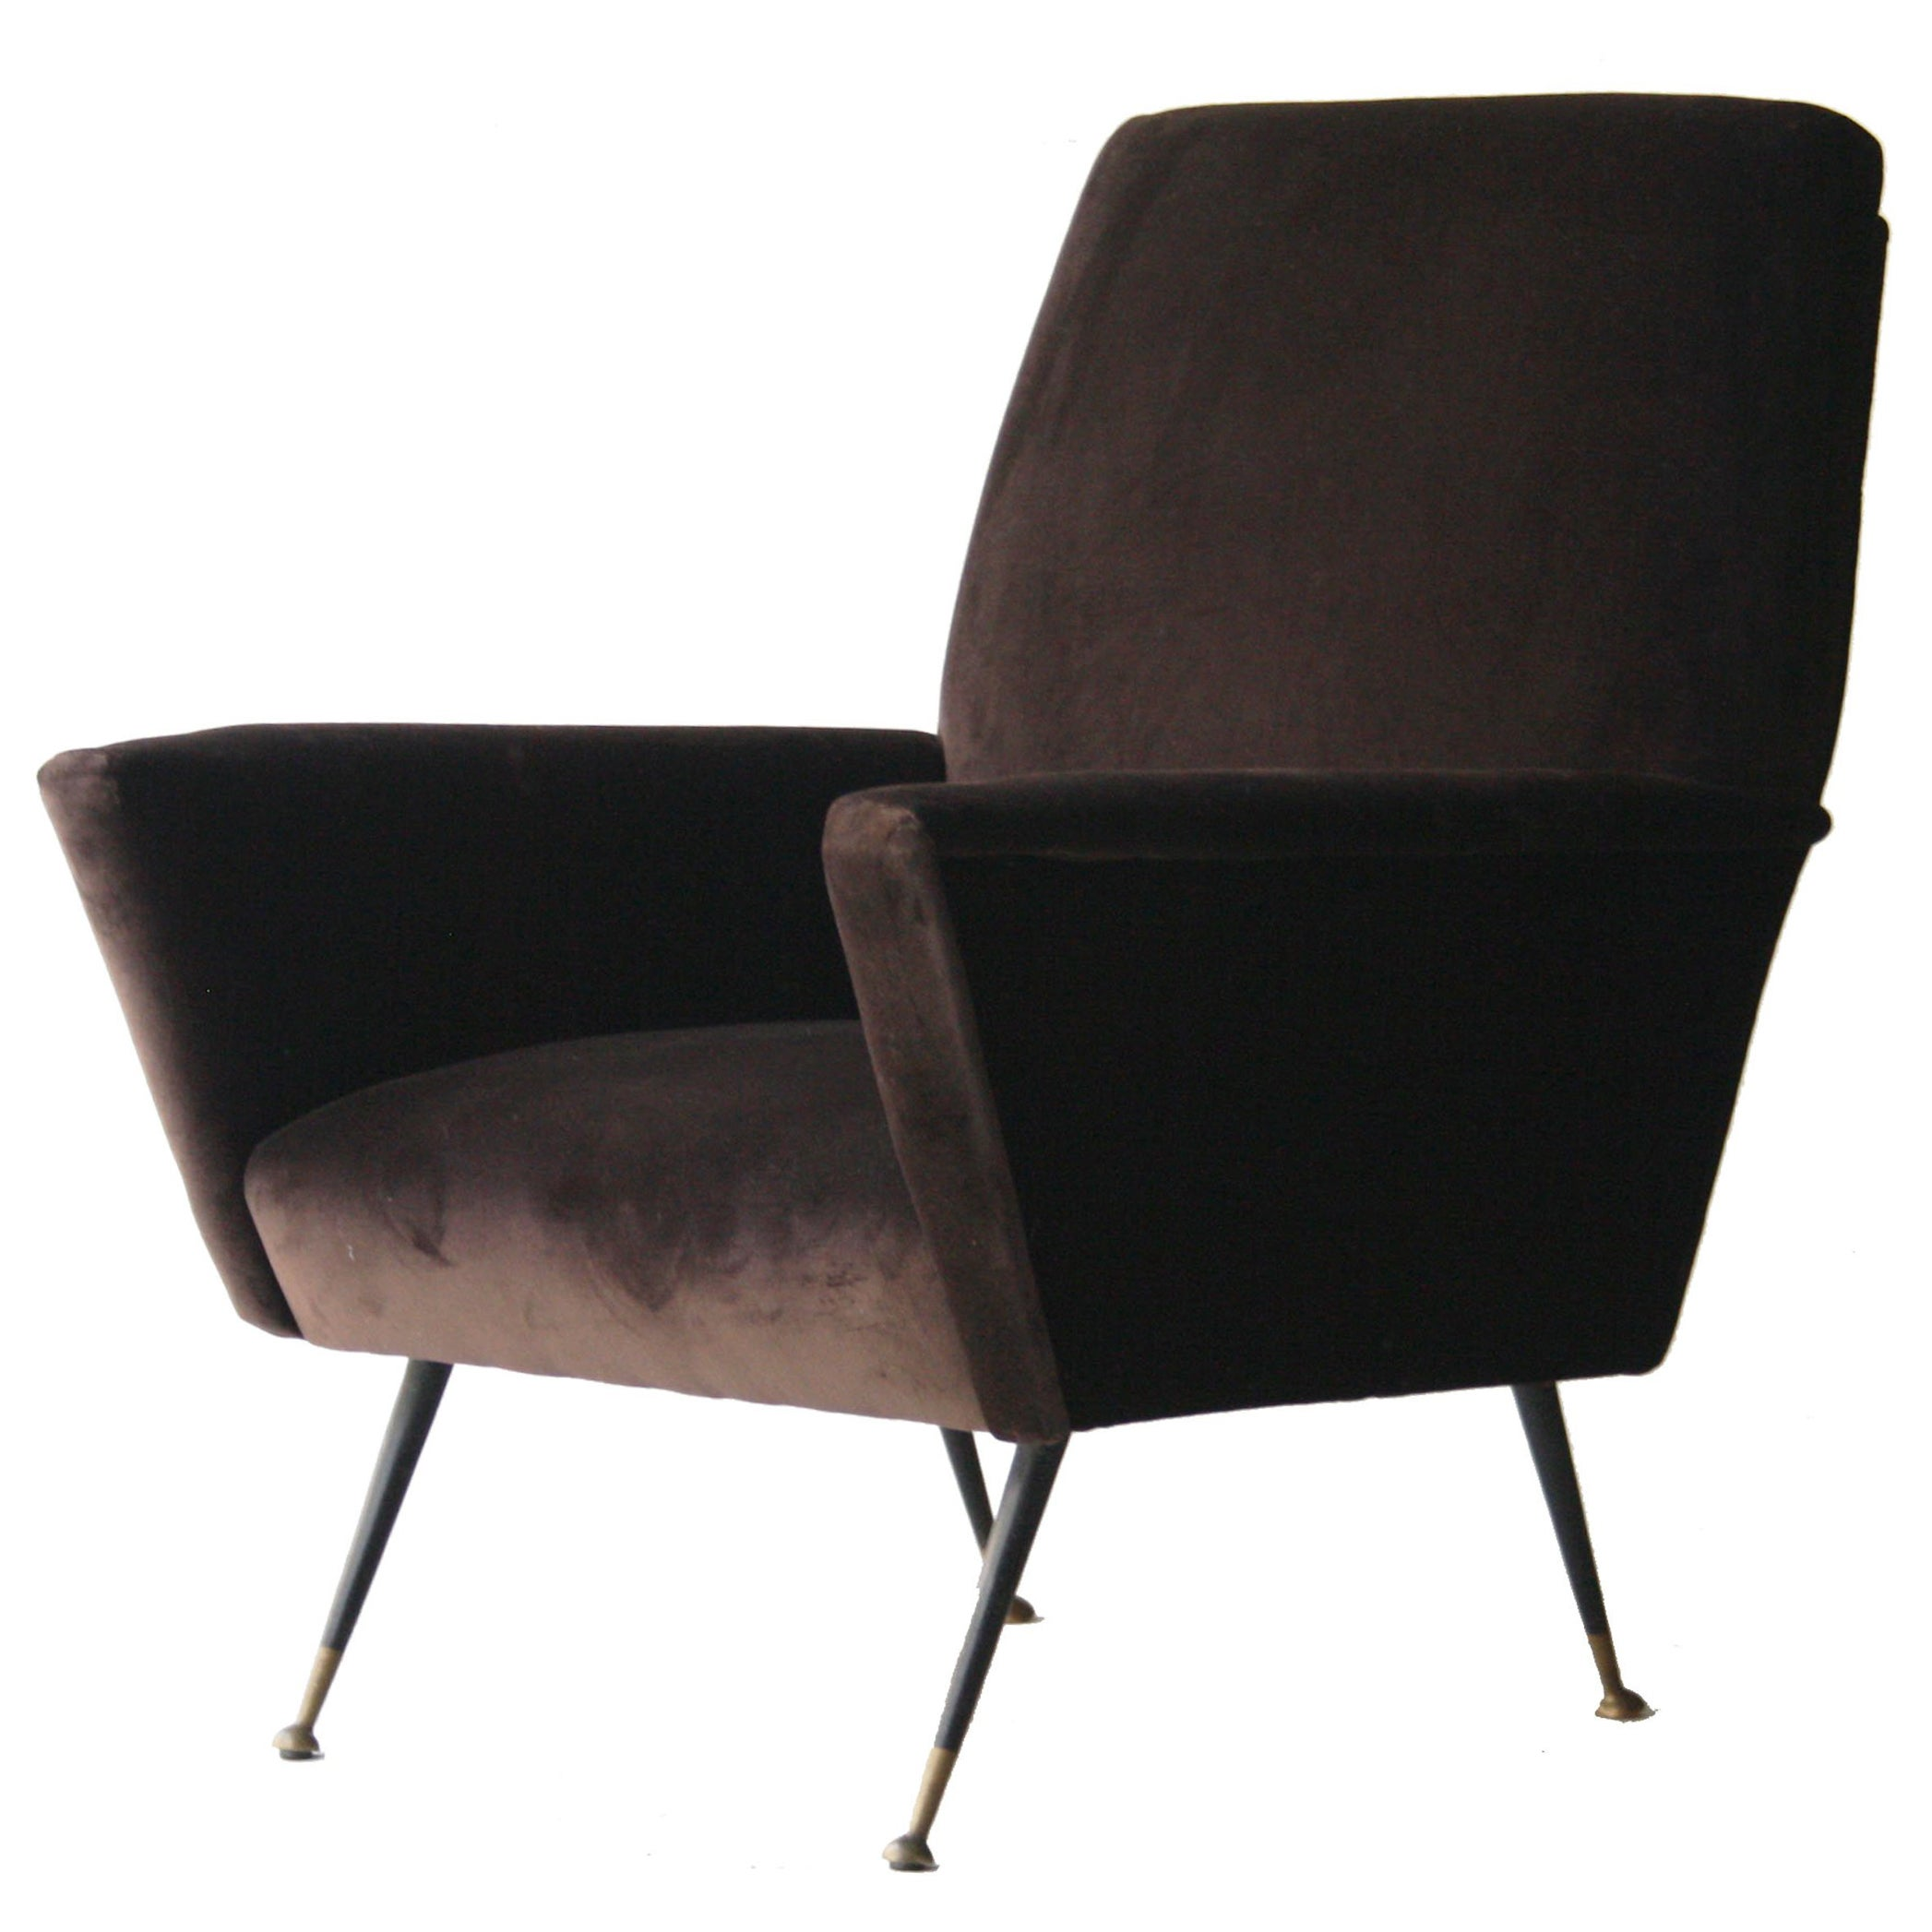 Armchair upholstered in brown cotton velvet italy 1950 for sale at 1stdibs